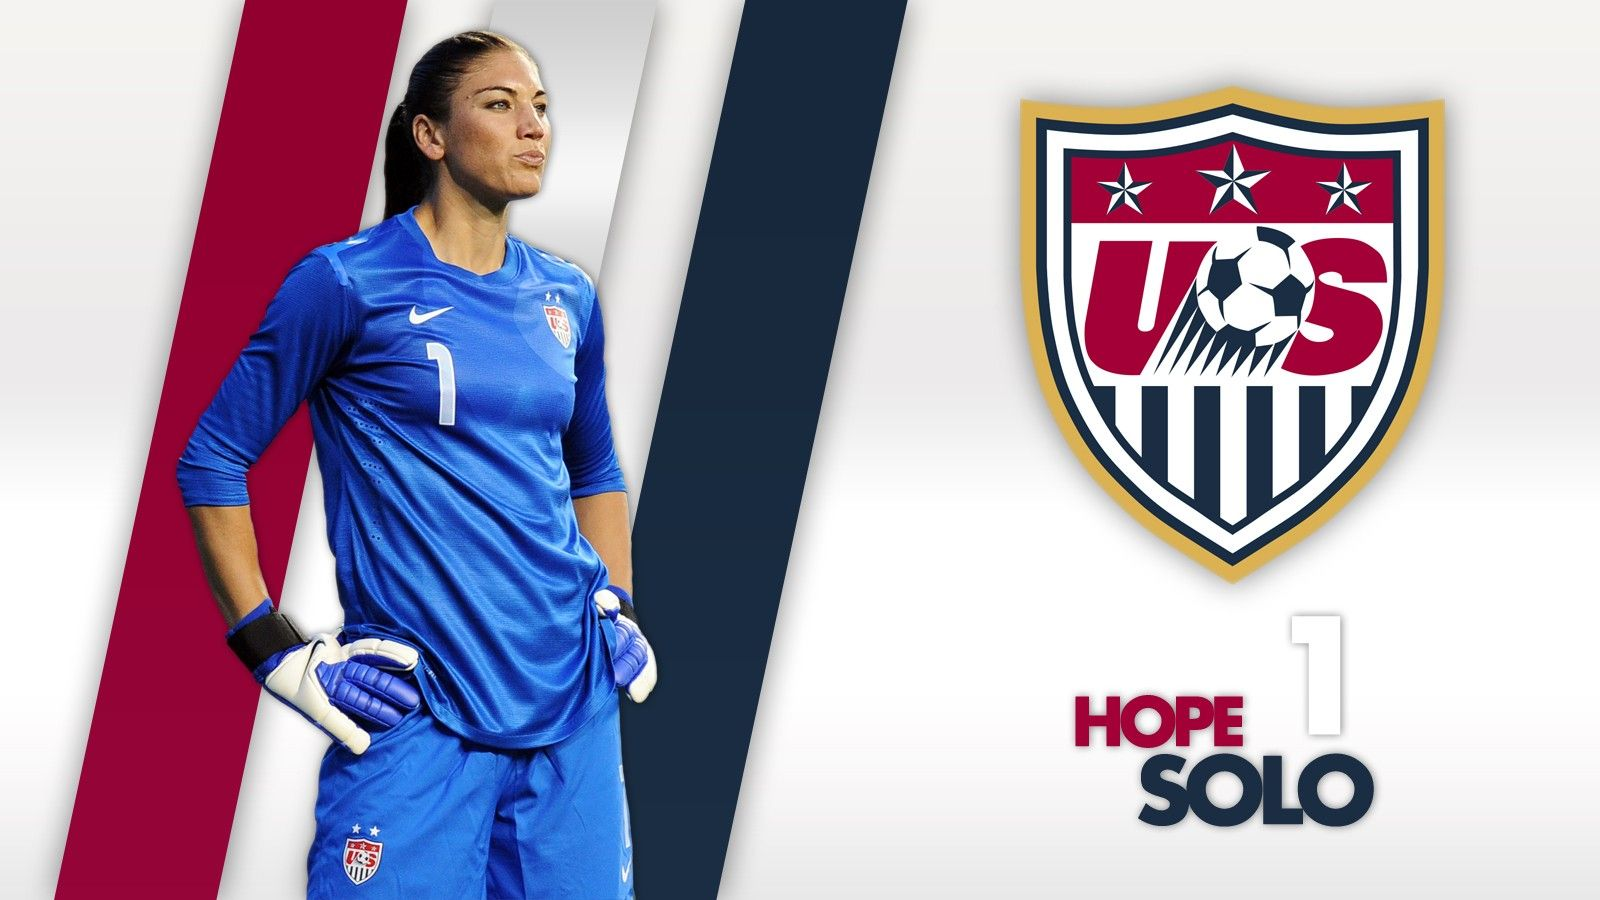 hope solo wallpaper 9 #hopesolowallpaper #hopesolo #football